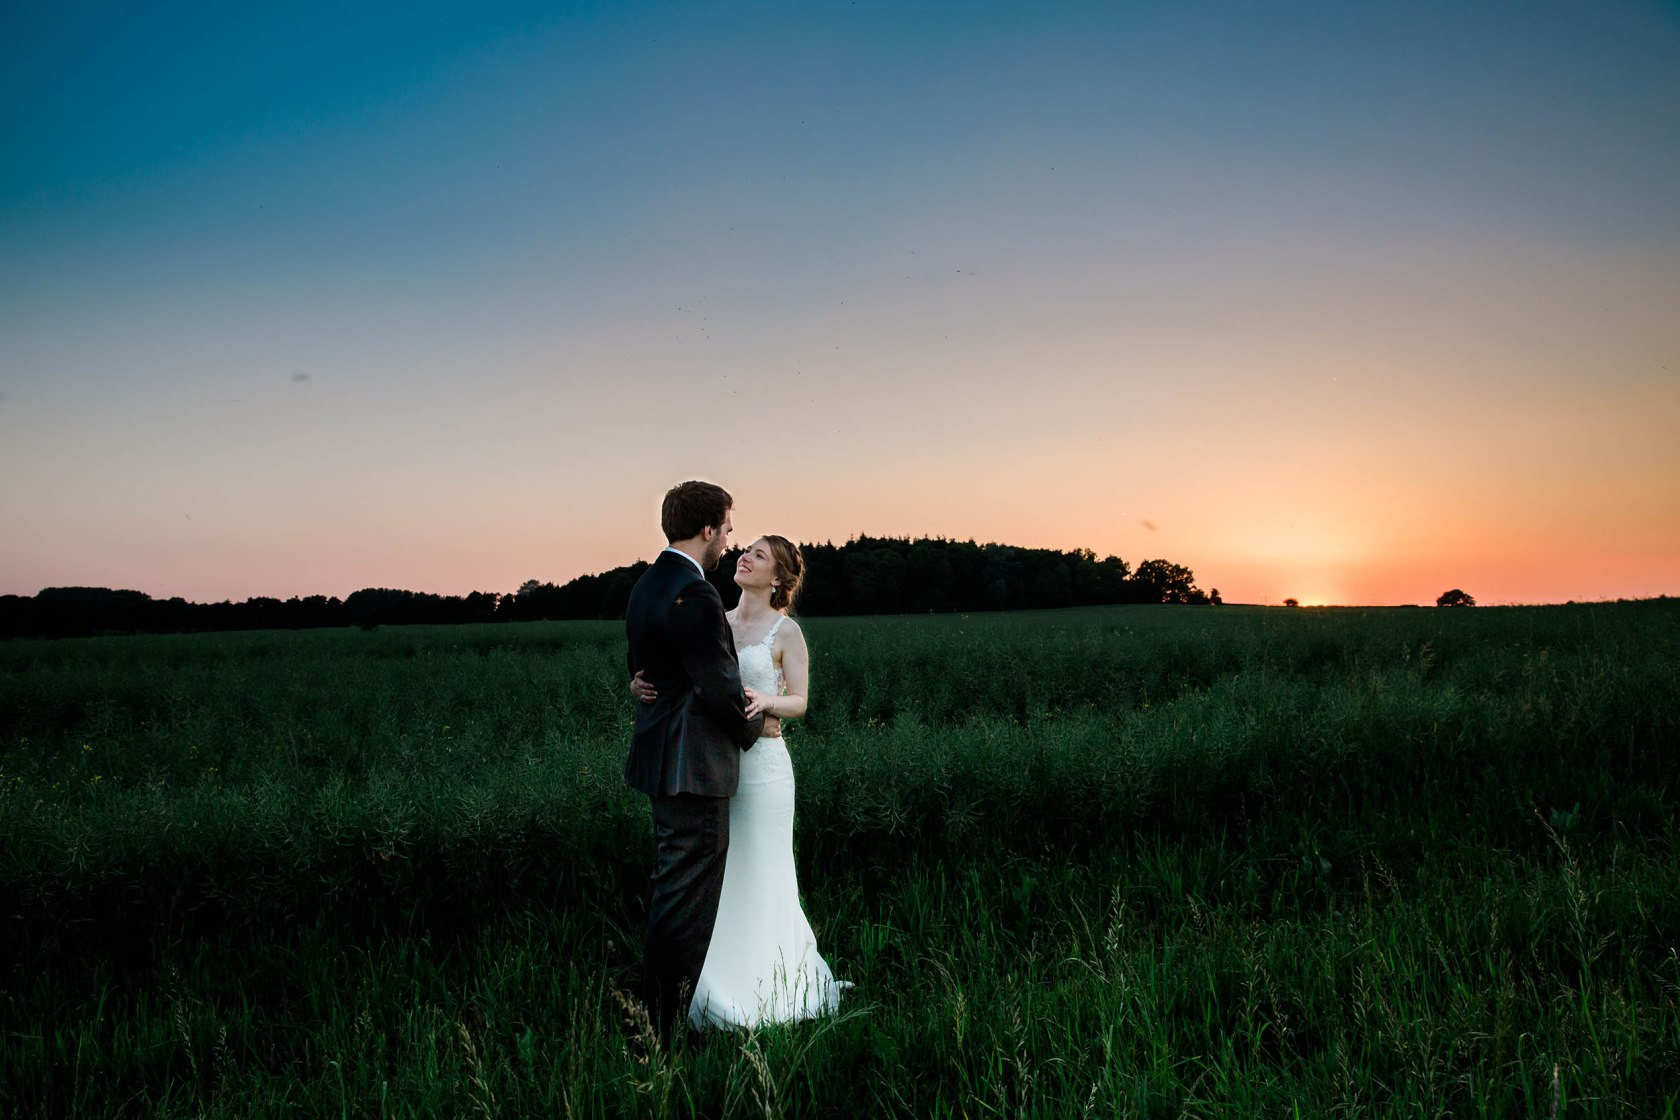 Modern Stylish Wedding at Swallows Nest Barn Couple Portrait Sunset